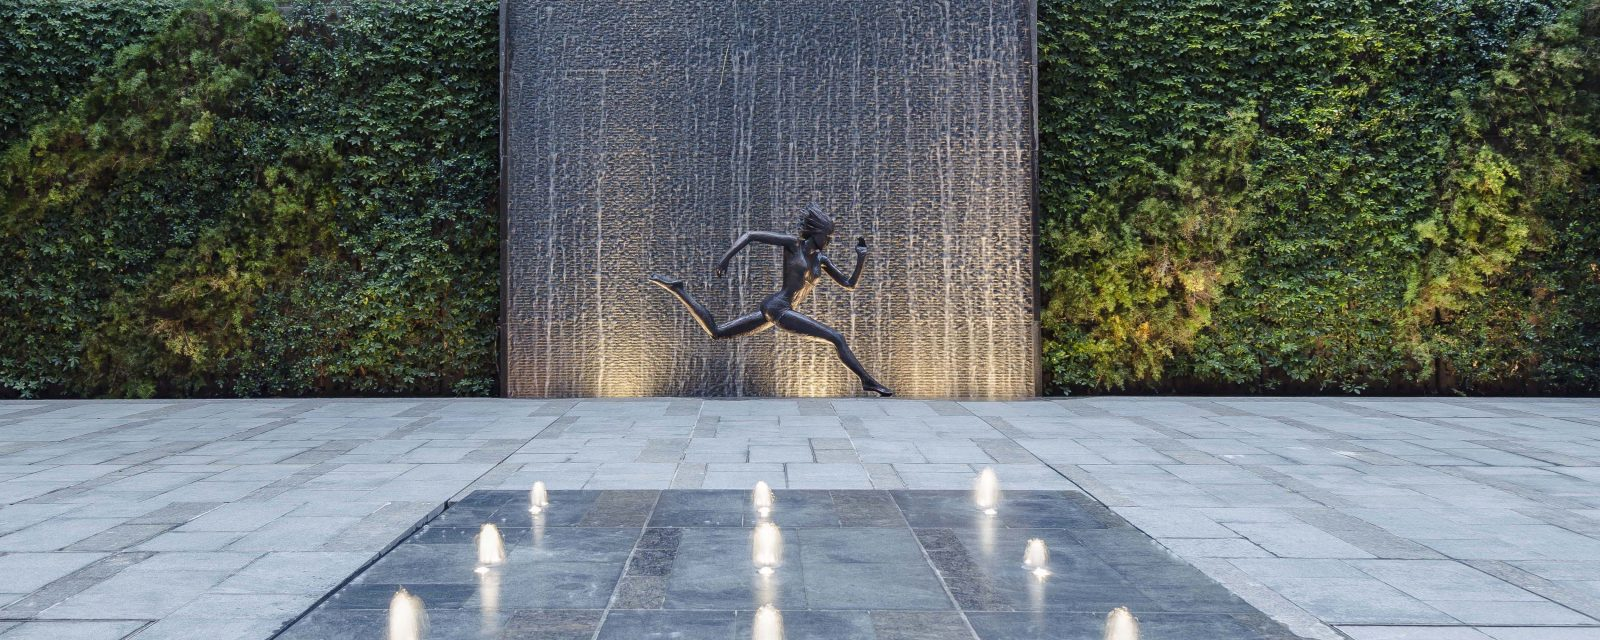 Female Statue Running With Waterfall Backdrop And Fountain Homatin Hillside by Garden Designer Andy Sturgeon